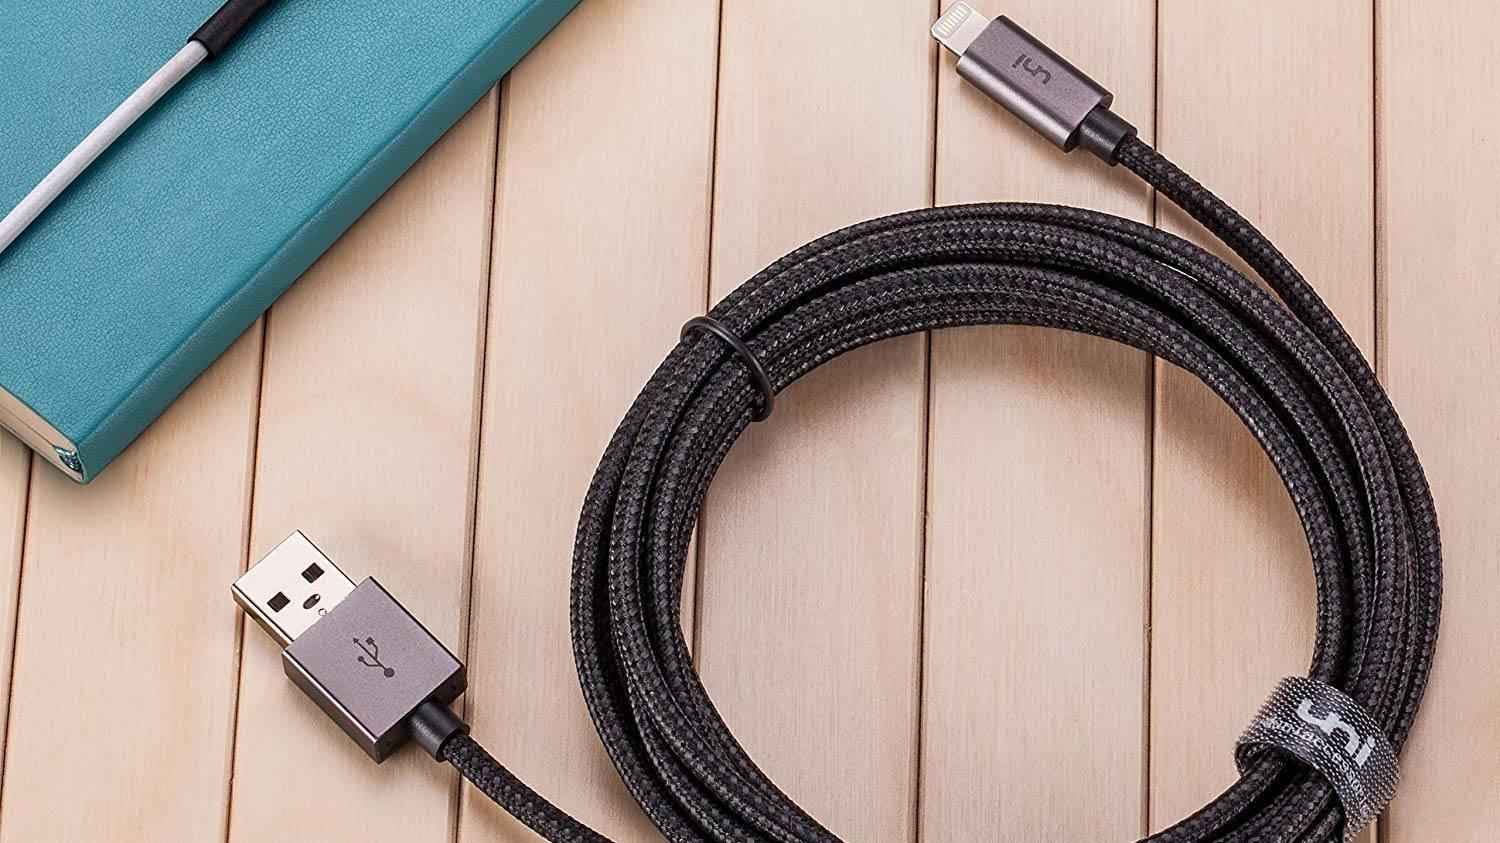 Uni USB to Lightning Cable